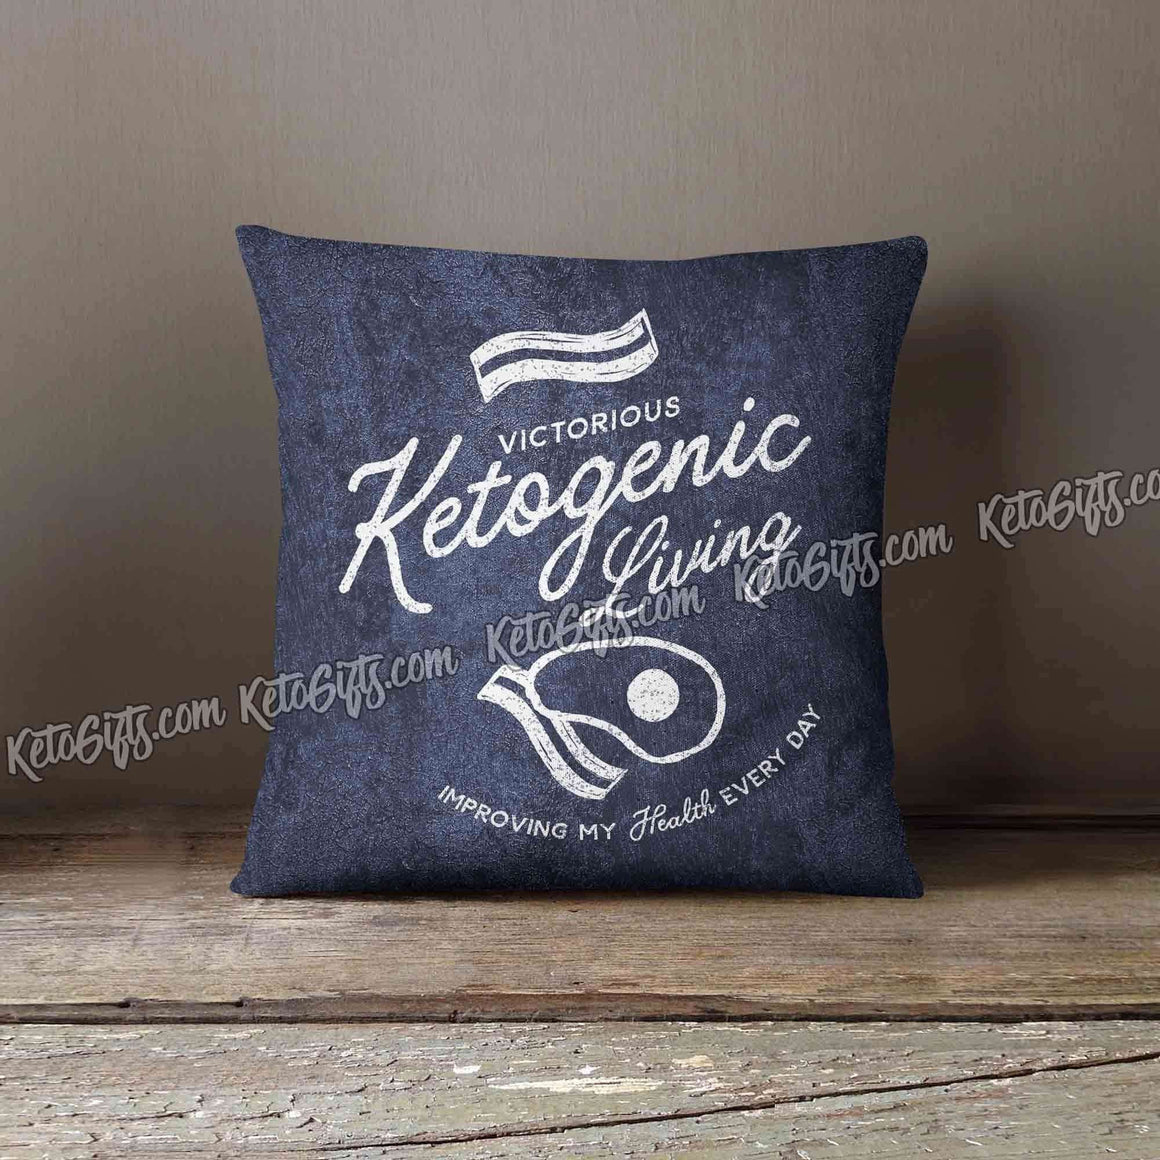 Ketogenic Pillow Keto Gift Victory in Keto by KetoGifts.com